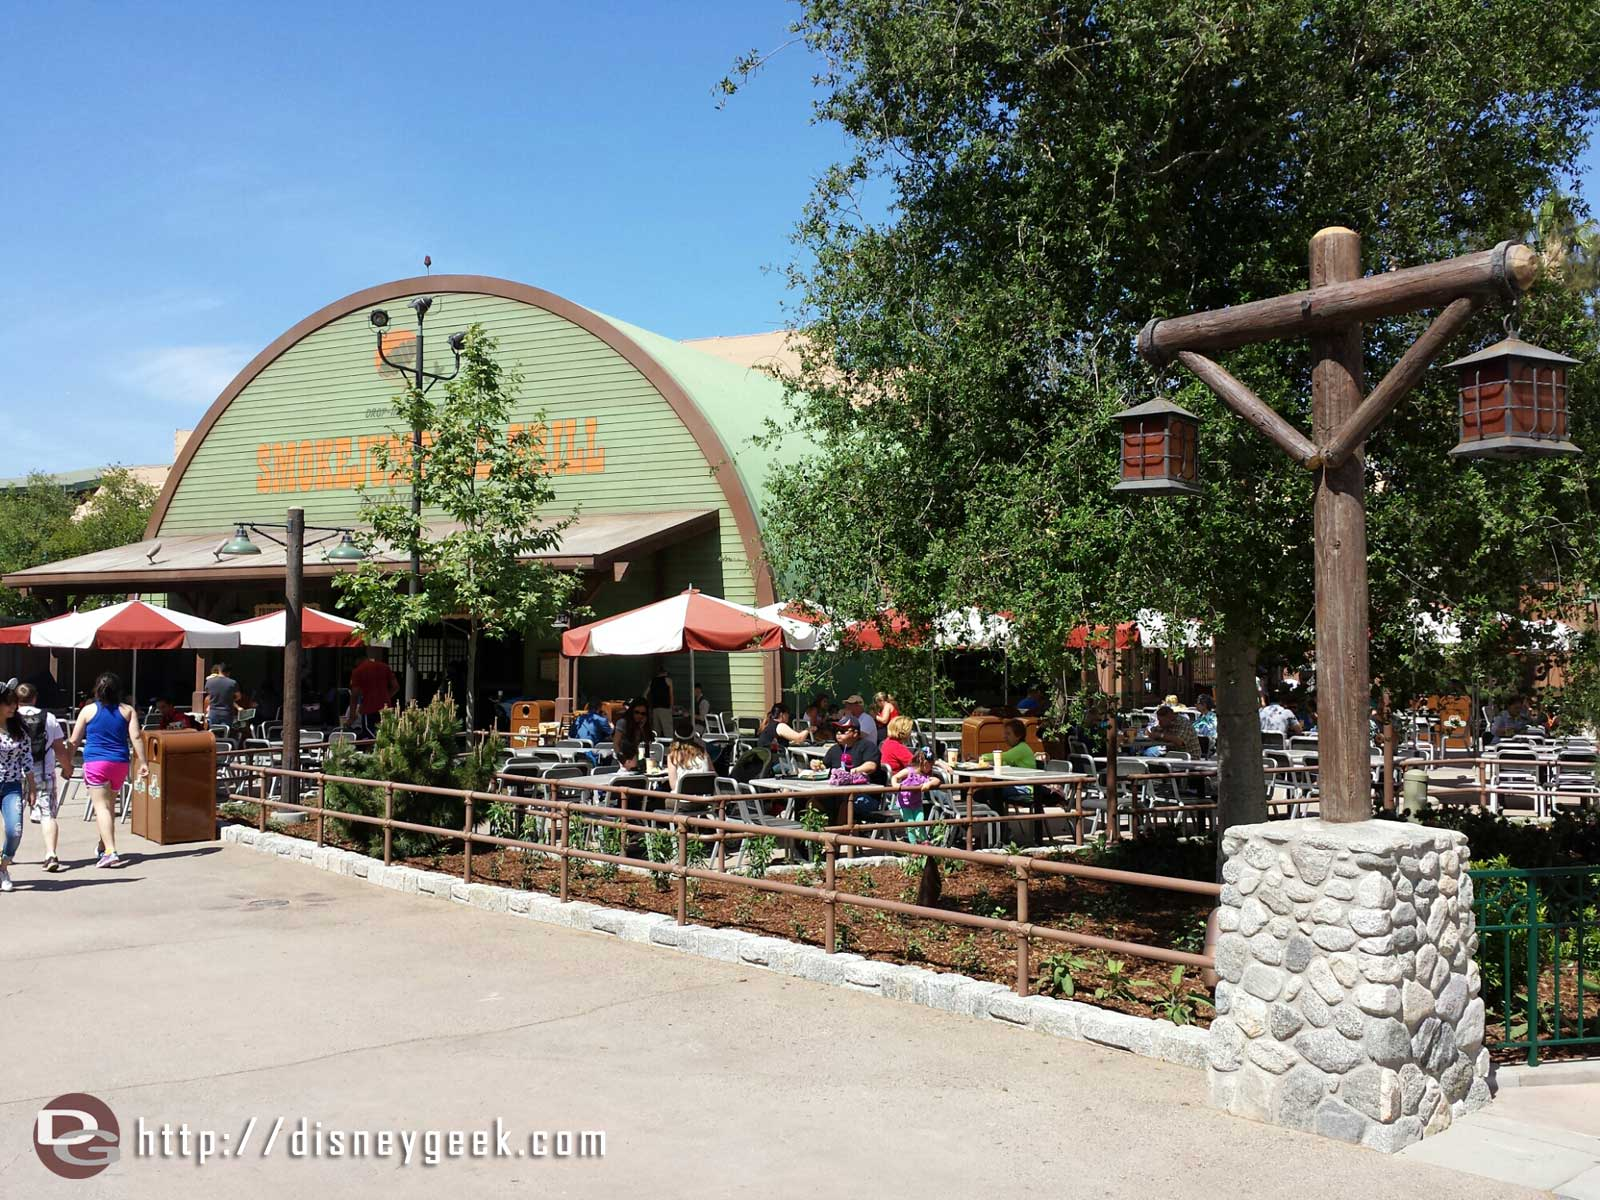 Smokejumpers Grill has opened in the Grizzly Peak Airfield area